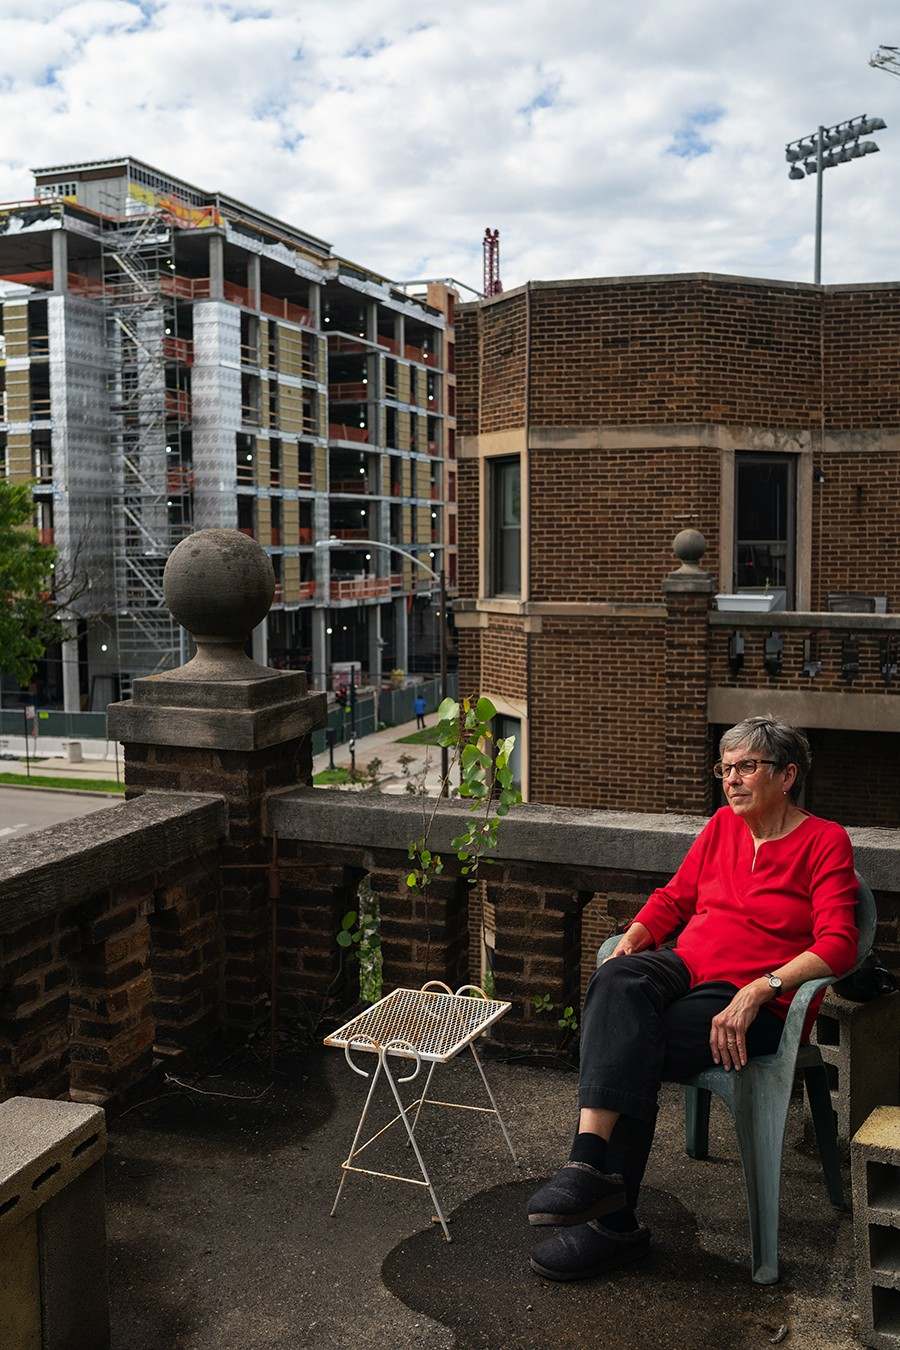 Sara Pitcher sits on the balcony of her co-op apartment on Woodlawn Avenue and 61st Street with University of Chicago construction dominating her view to the north. Pitcher is the last original resident of these apartments rehabbed and co-founded by her late husband, Rev. Al. Pitcher, and the Covenant Community of University Church over 40 years ago. - MAX HERMAN